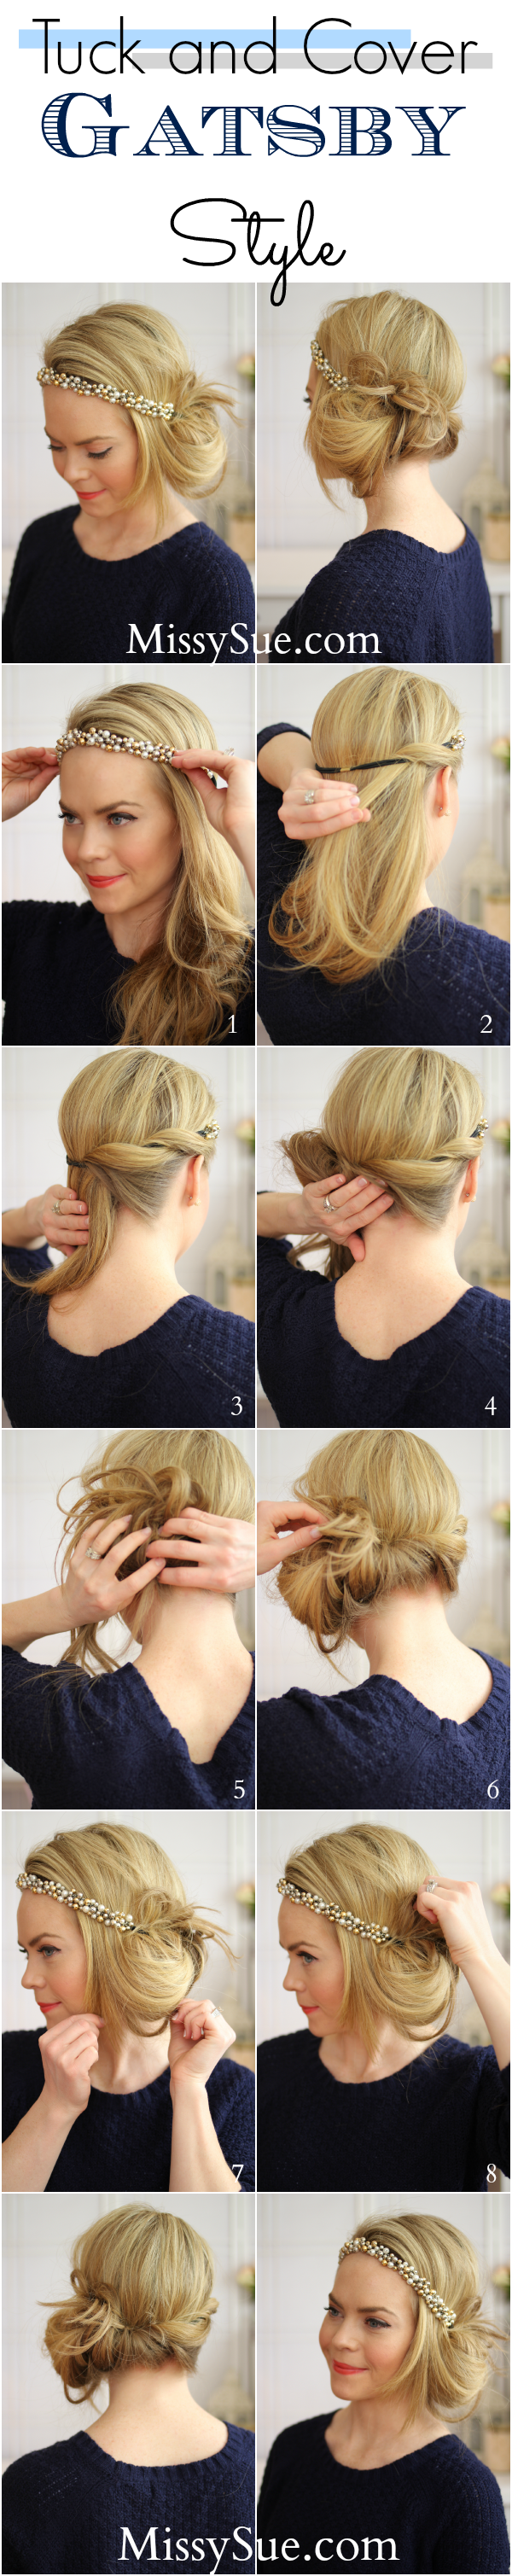 tuck and cover great gatsby style | hairstyle ideas | gatsby